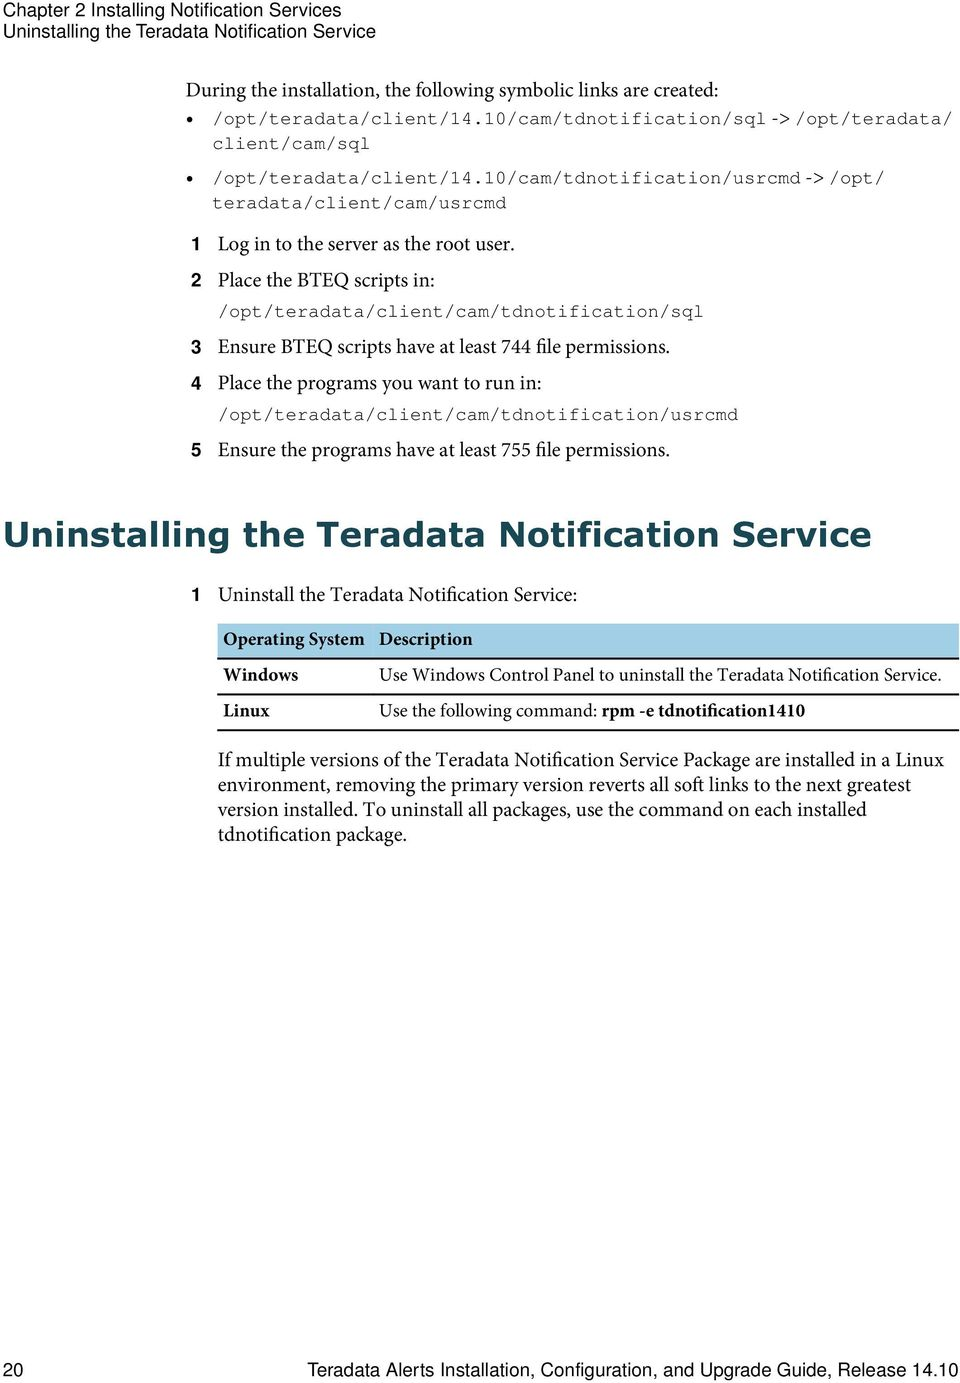 2 Place the BTEQ scripts in: /opt/teradata/client/cam/